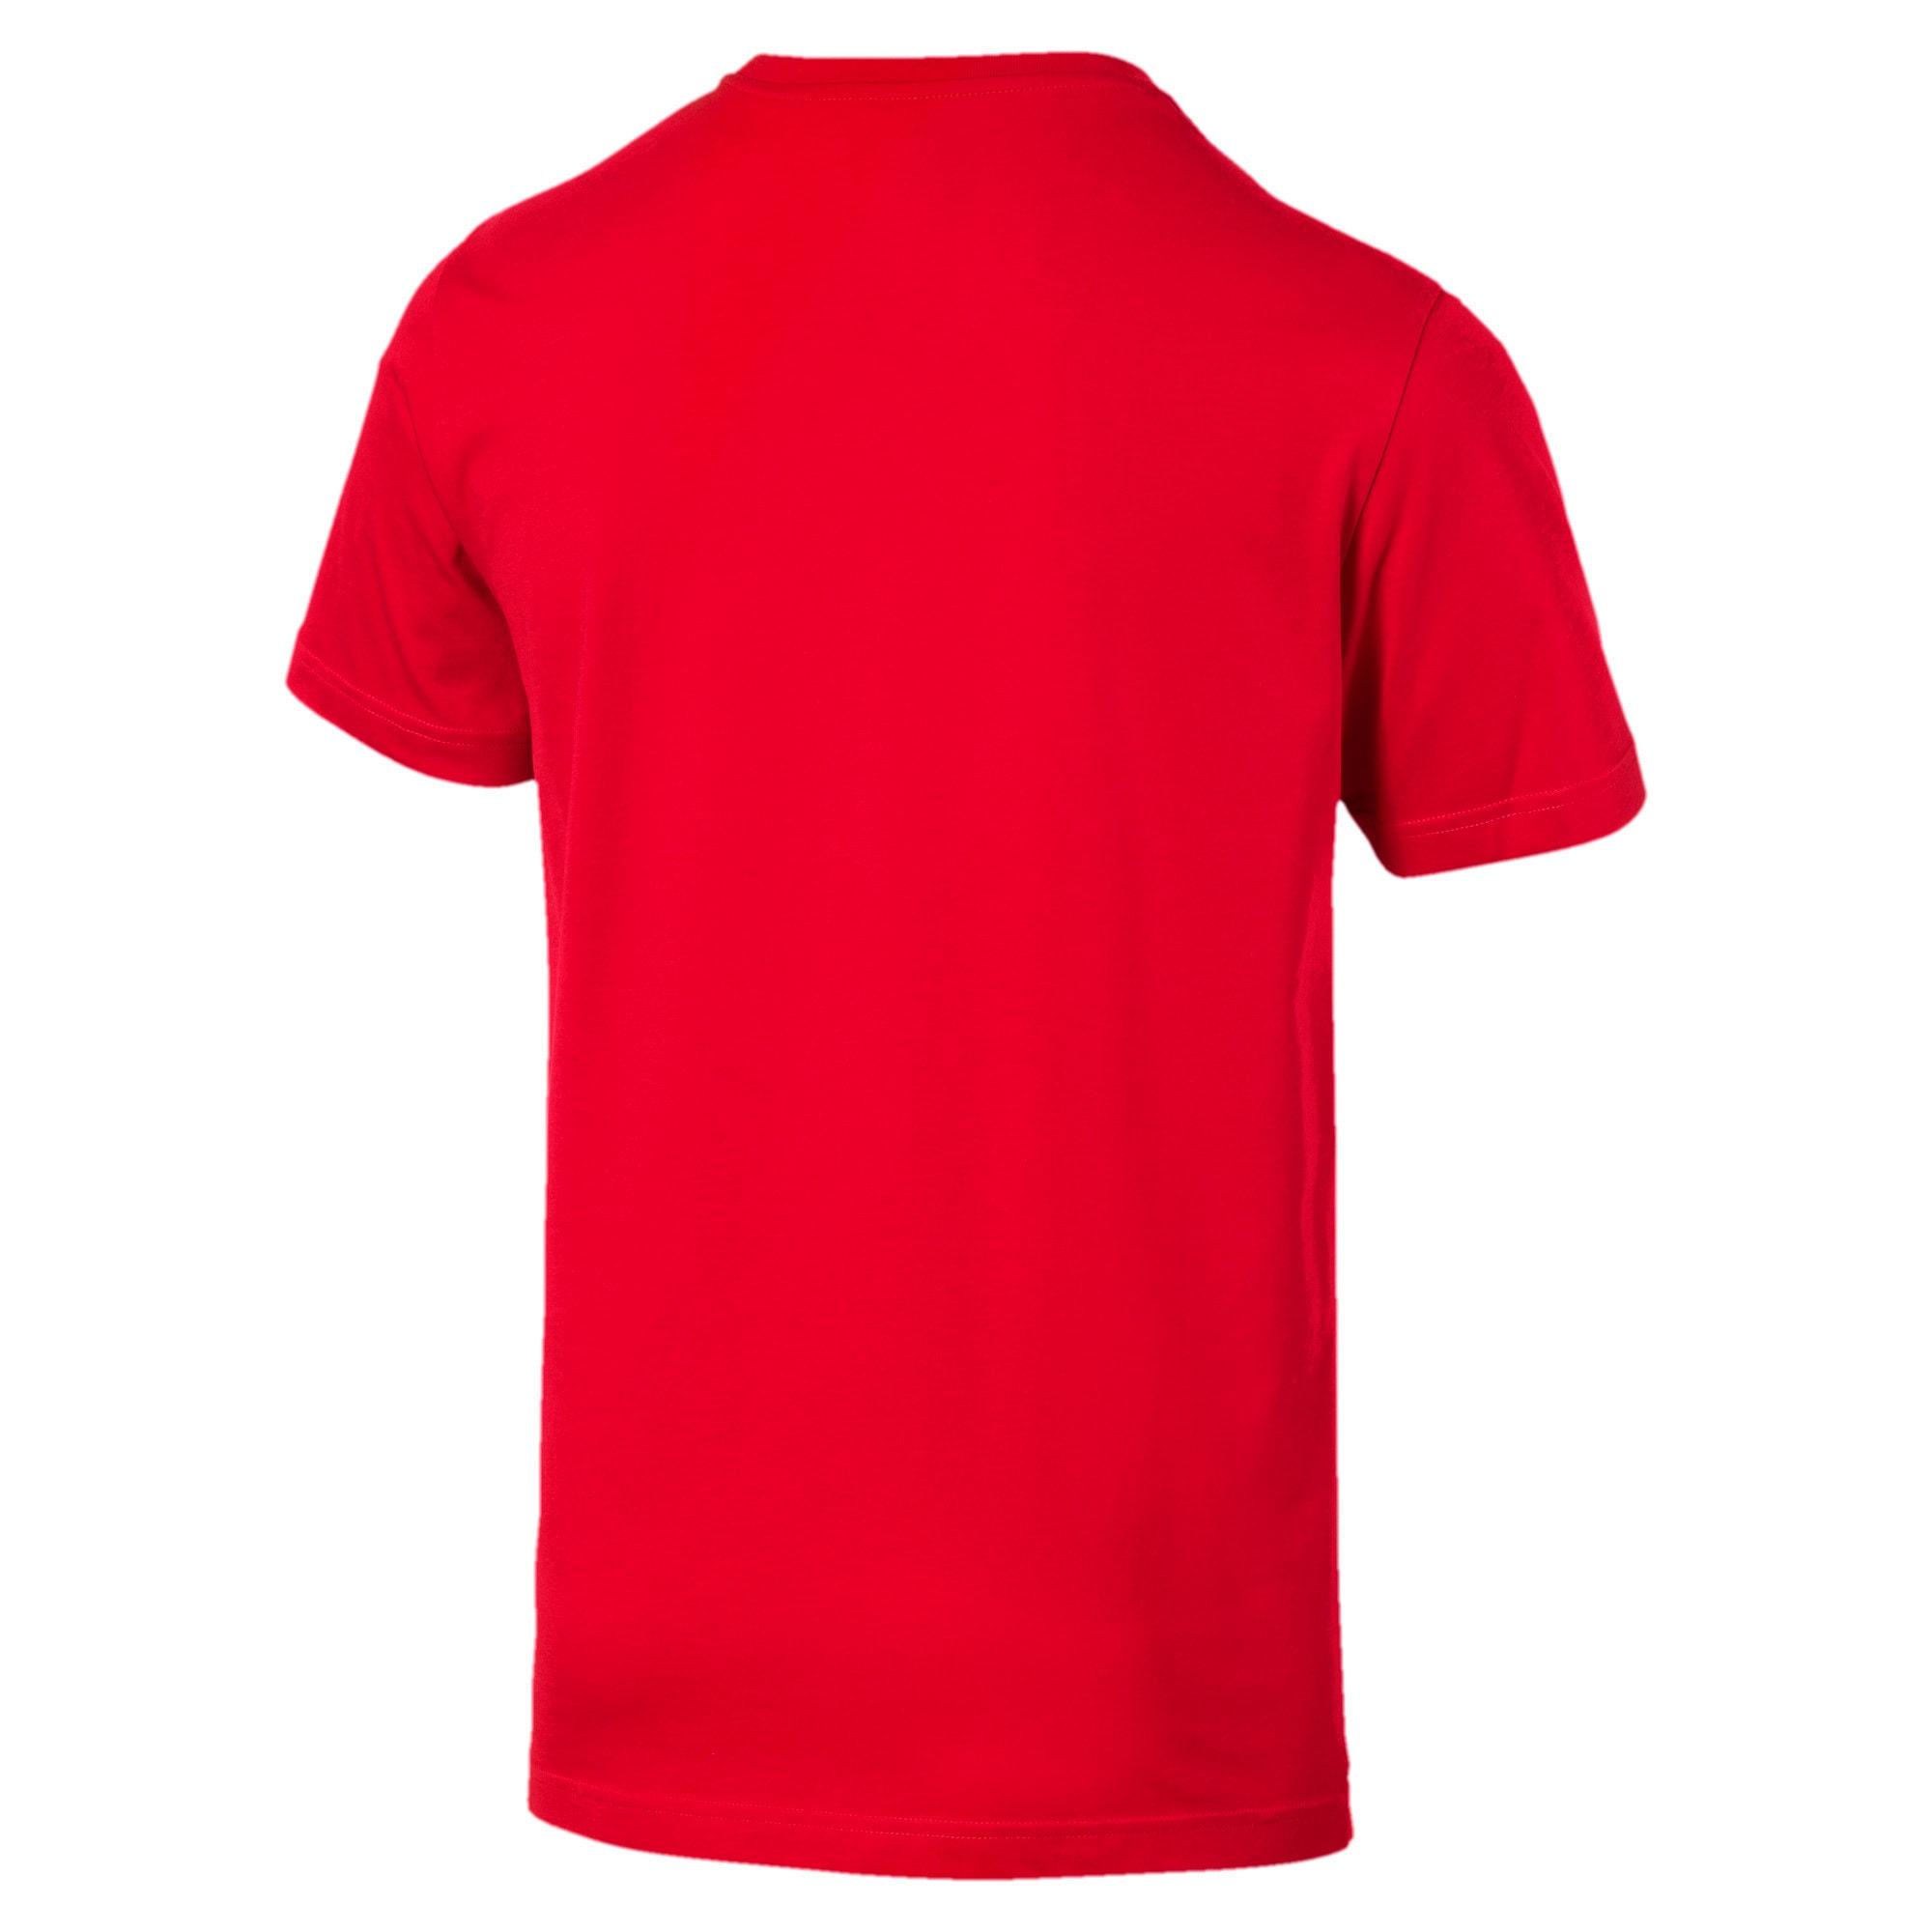 Thumbnail 5 of Graphic Short Sleeve Men's Tee, High Risk Red, medium-IND